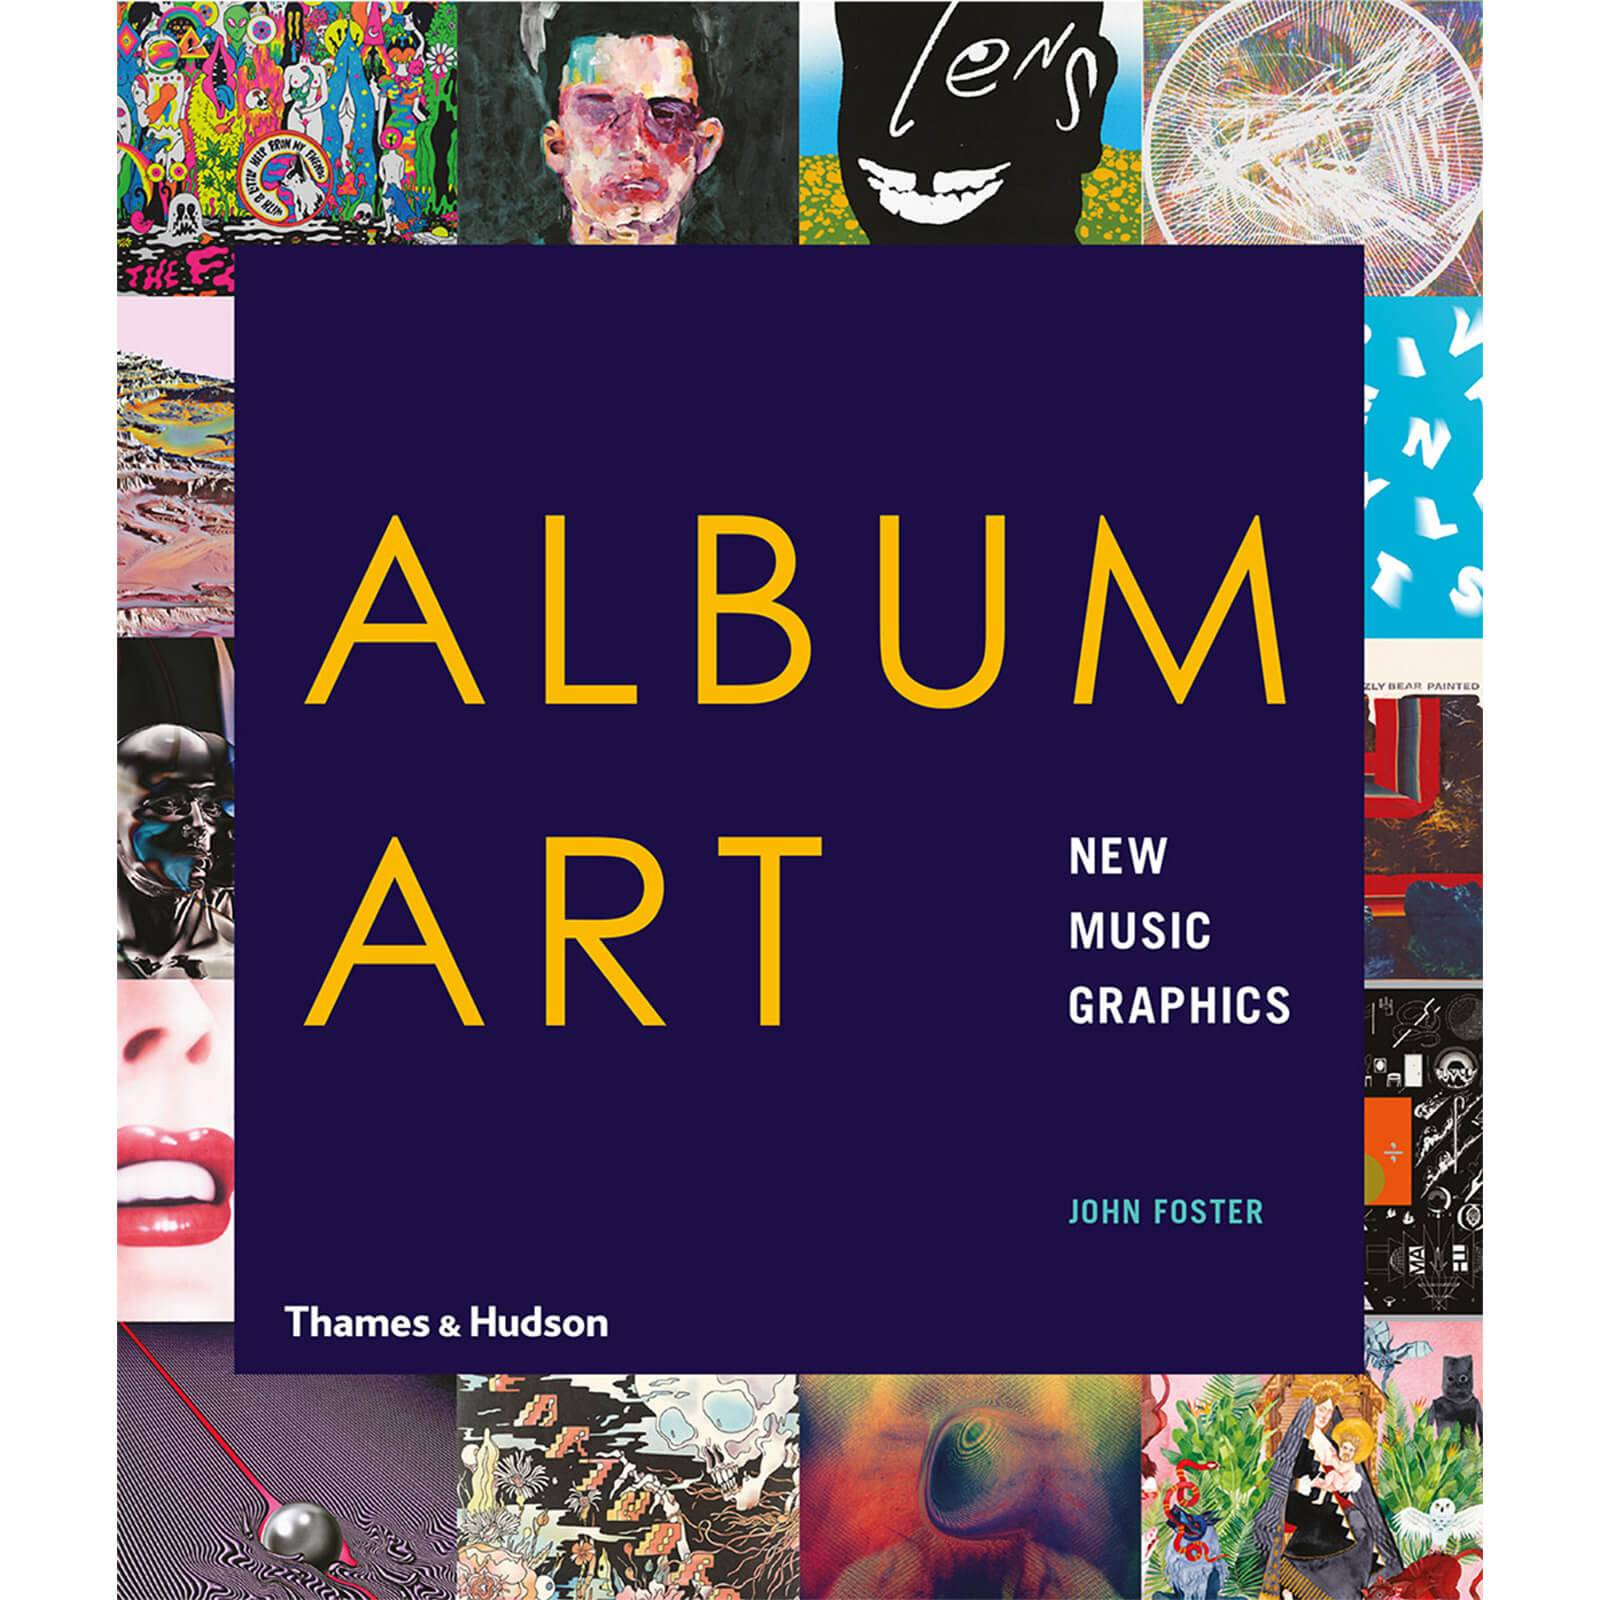 Thames and Hudson Ltd: Album Art - New Music Graphics